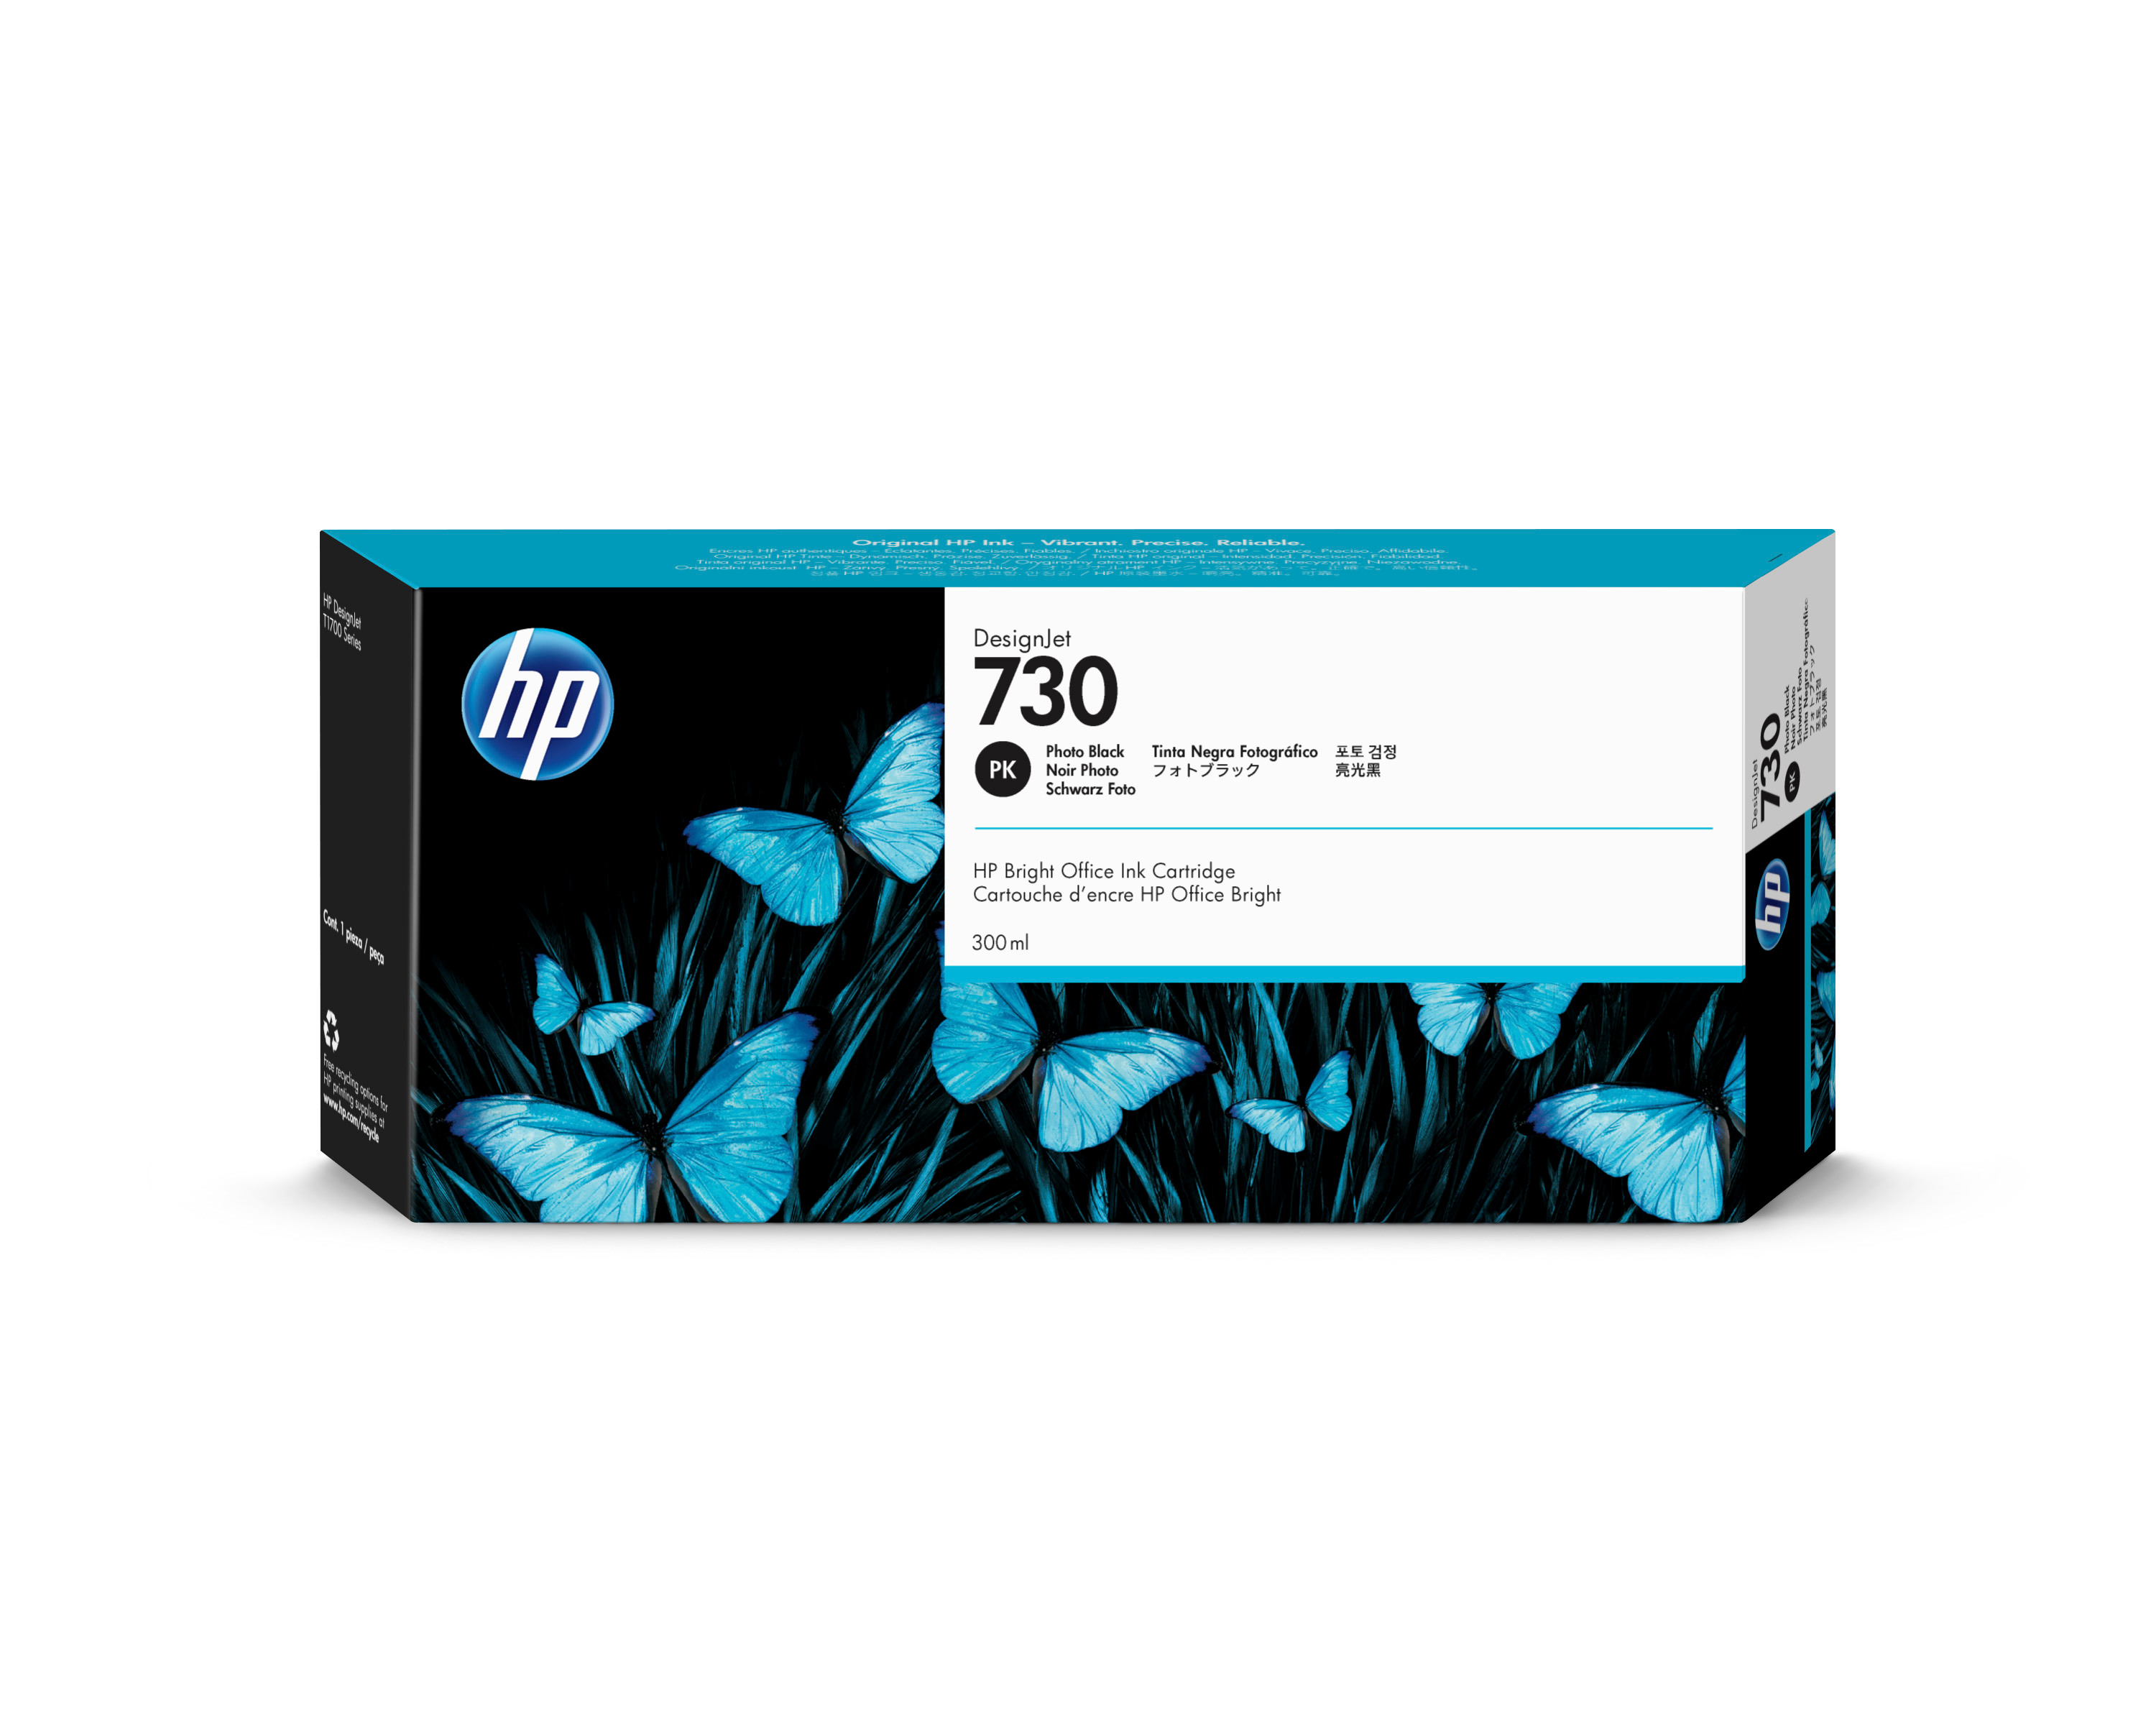 HP P2V73A Tinte Photo black